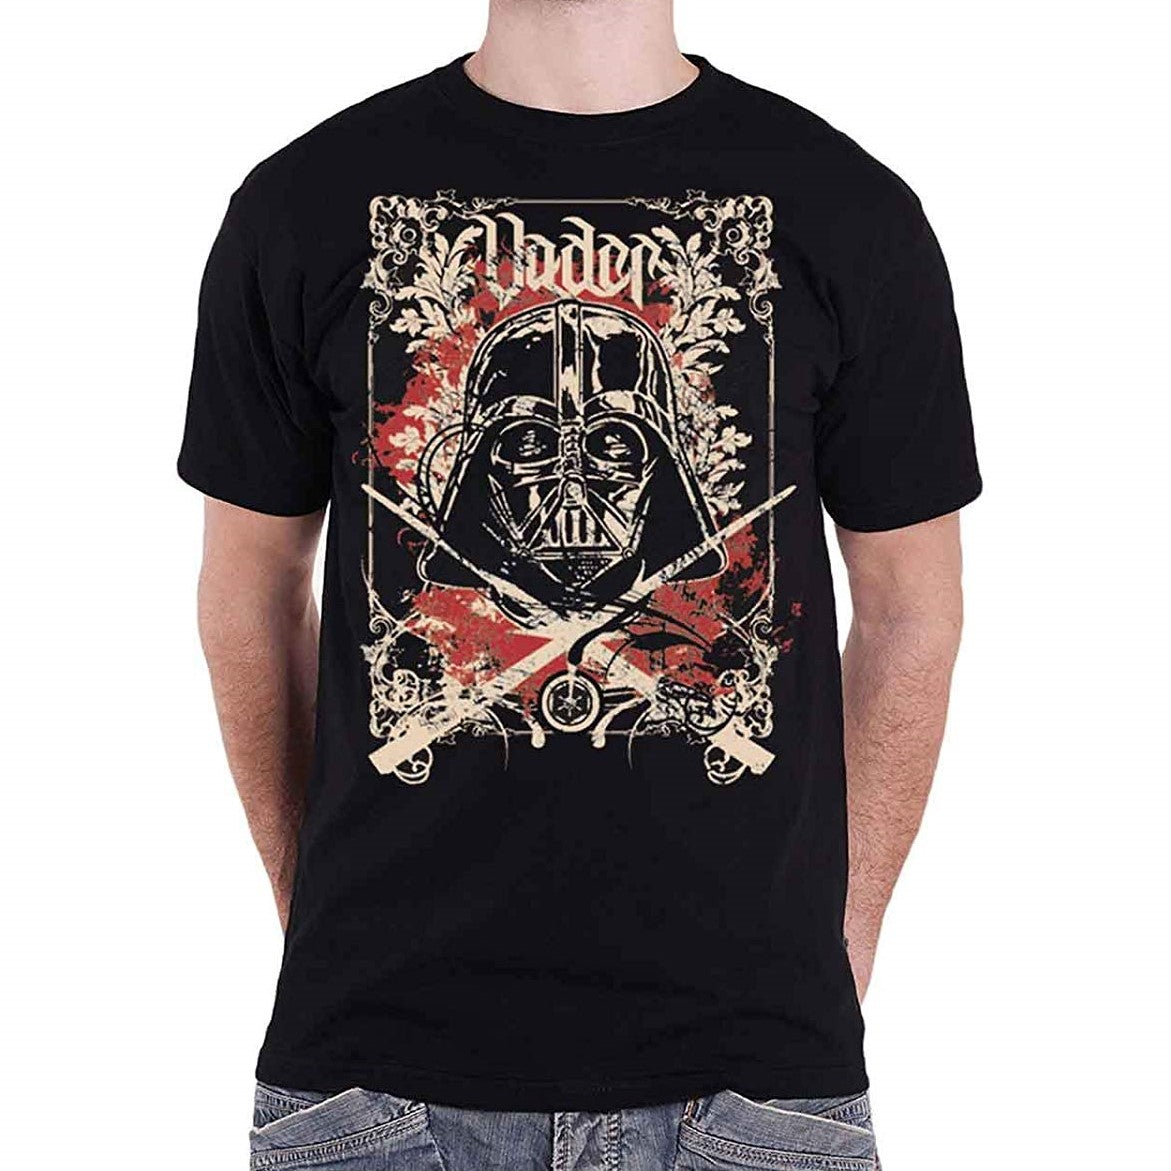 T-Shirt - Star Wars - Vader Decor